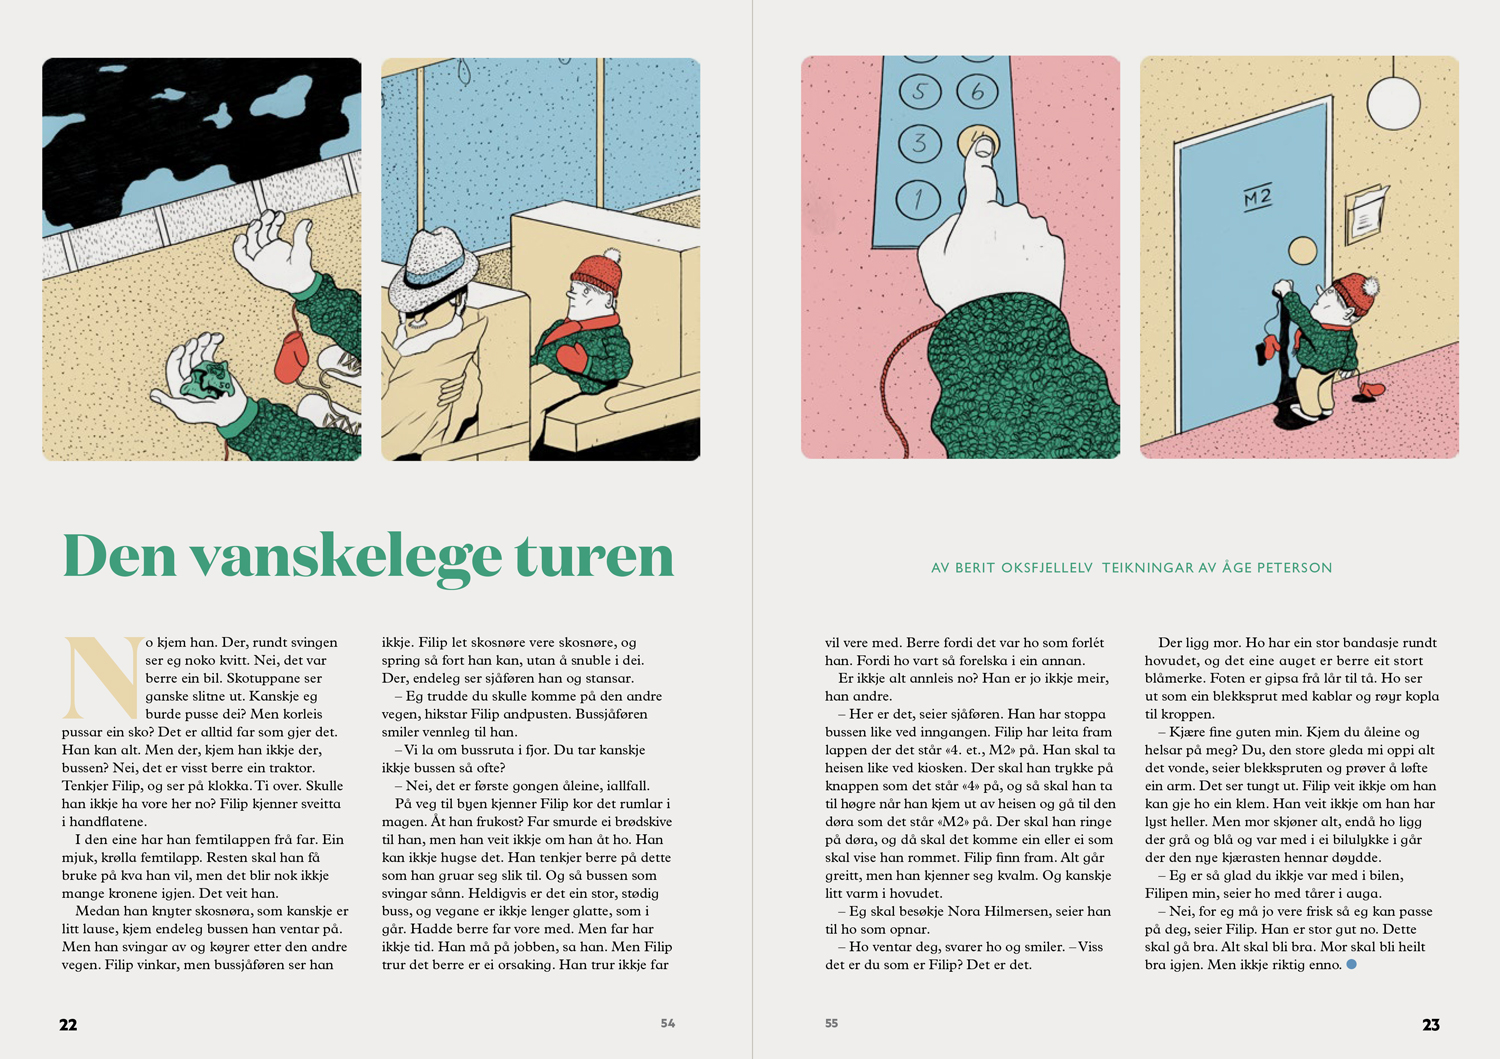 Layout and design by Aina Griffin and Susanne Brochmann.